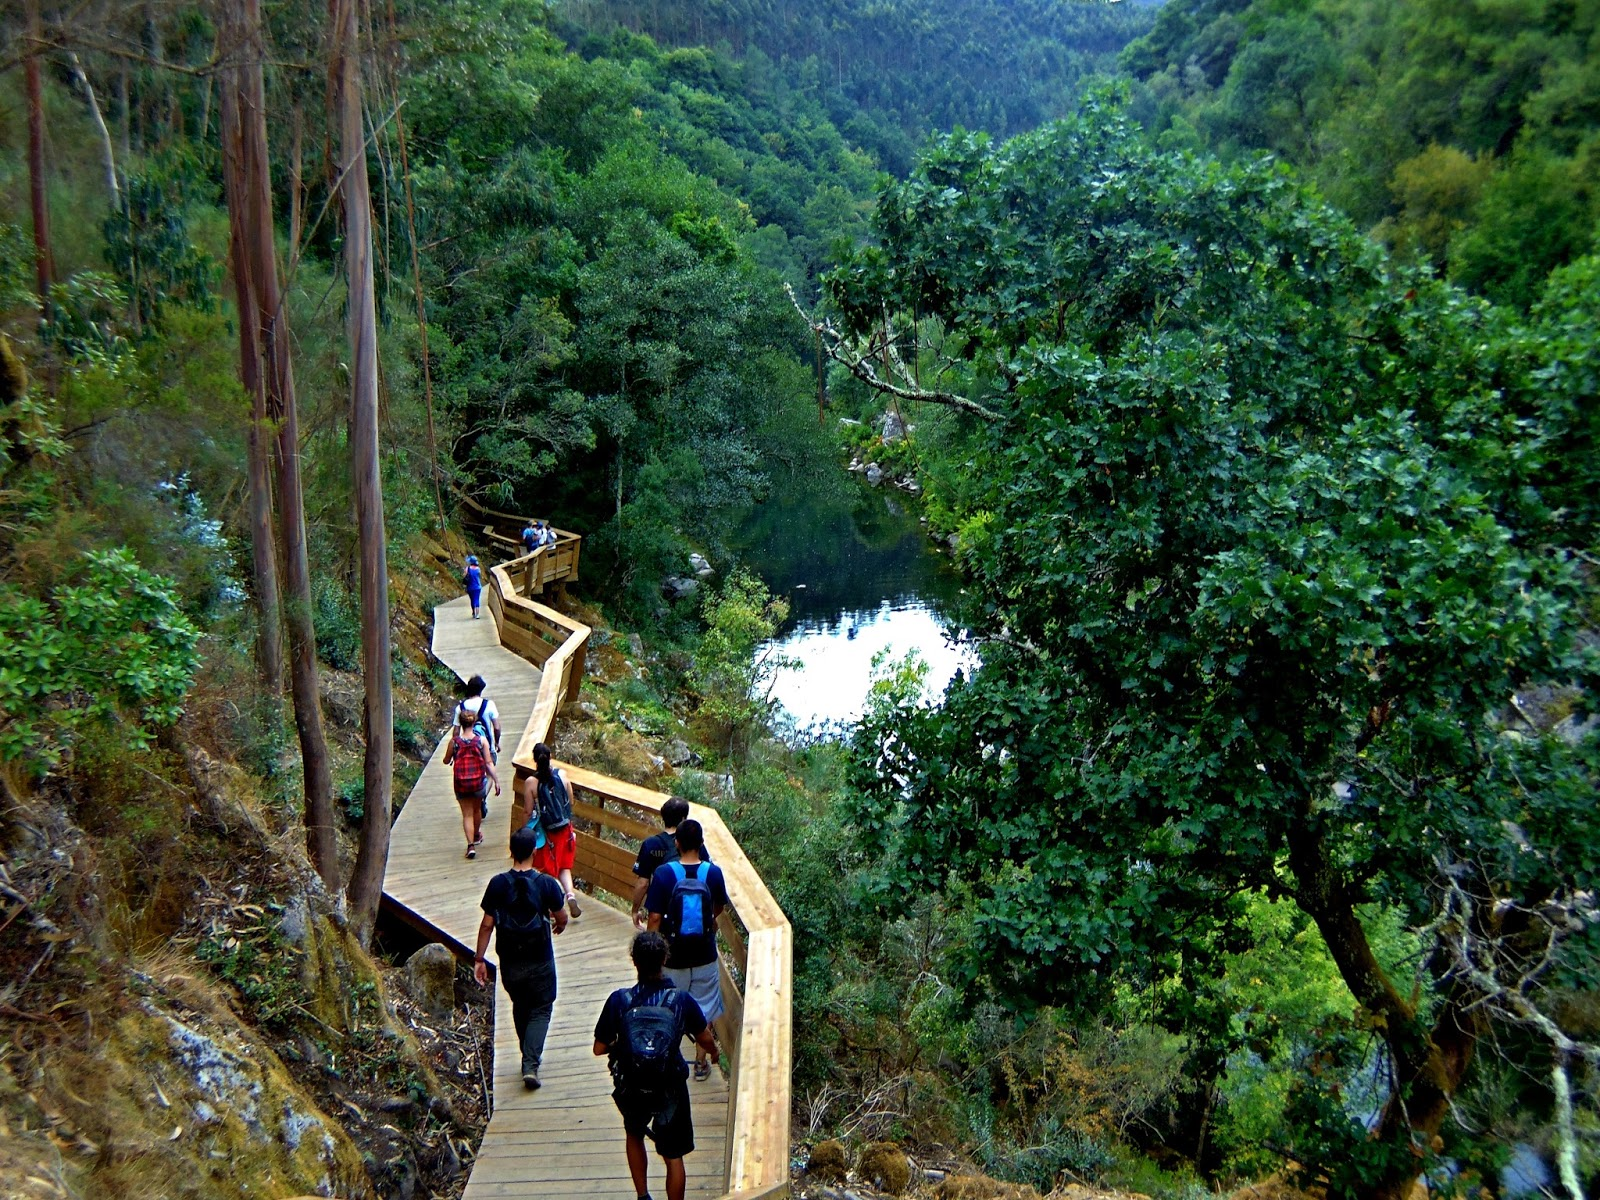 Passadiços-do-paiva-geopark-arouca